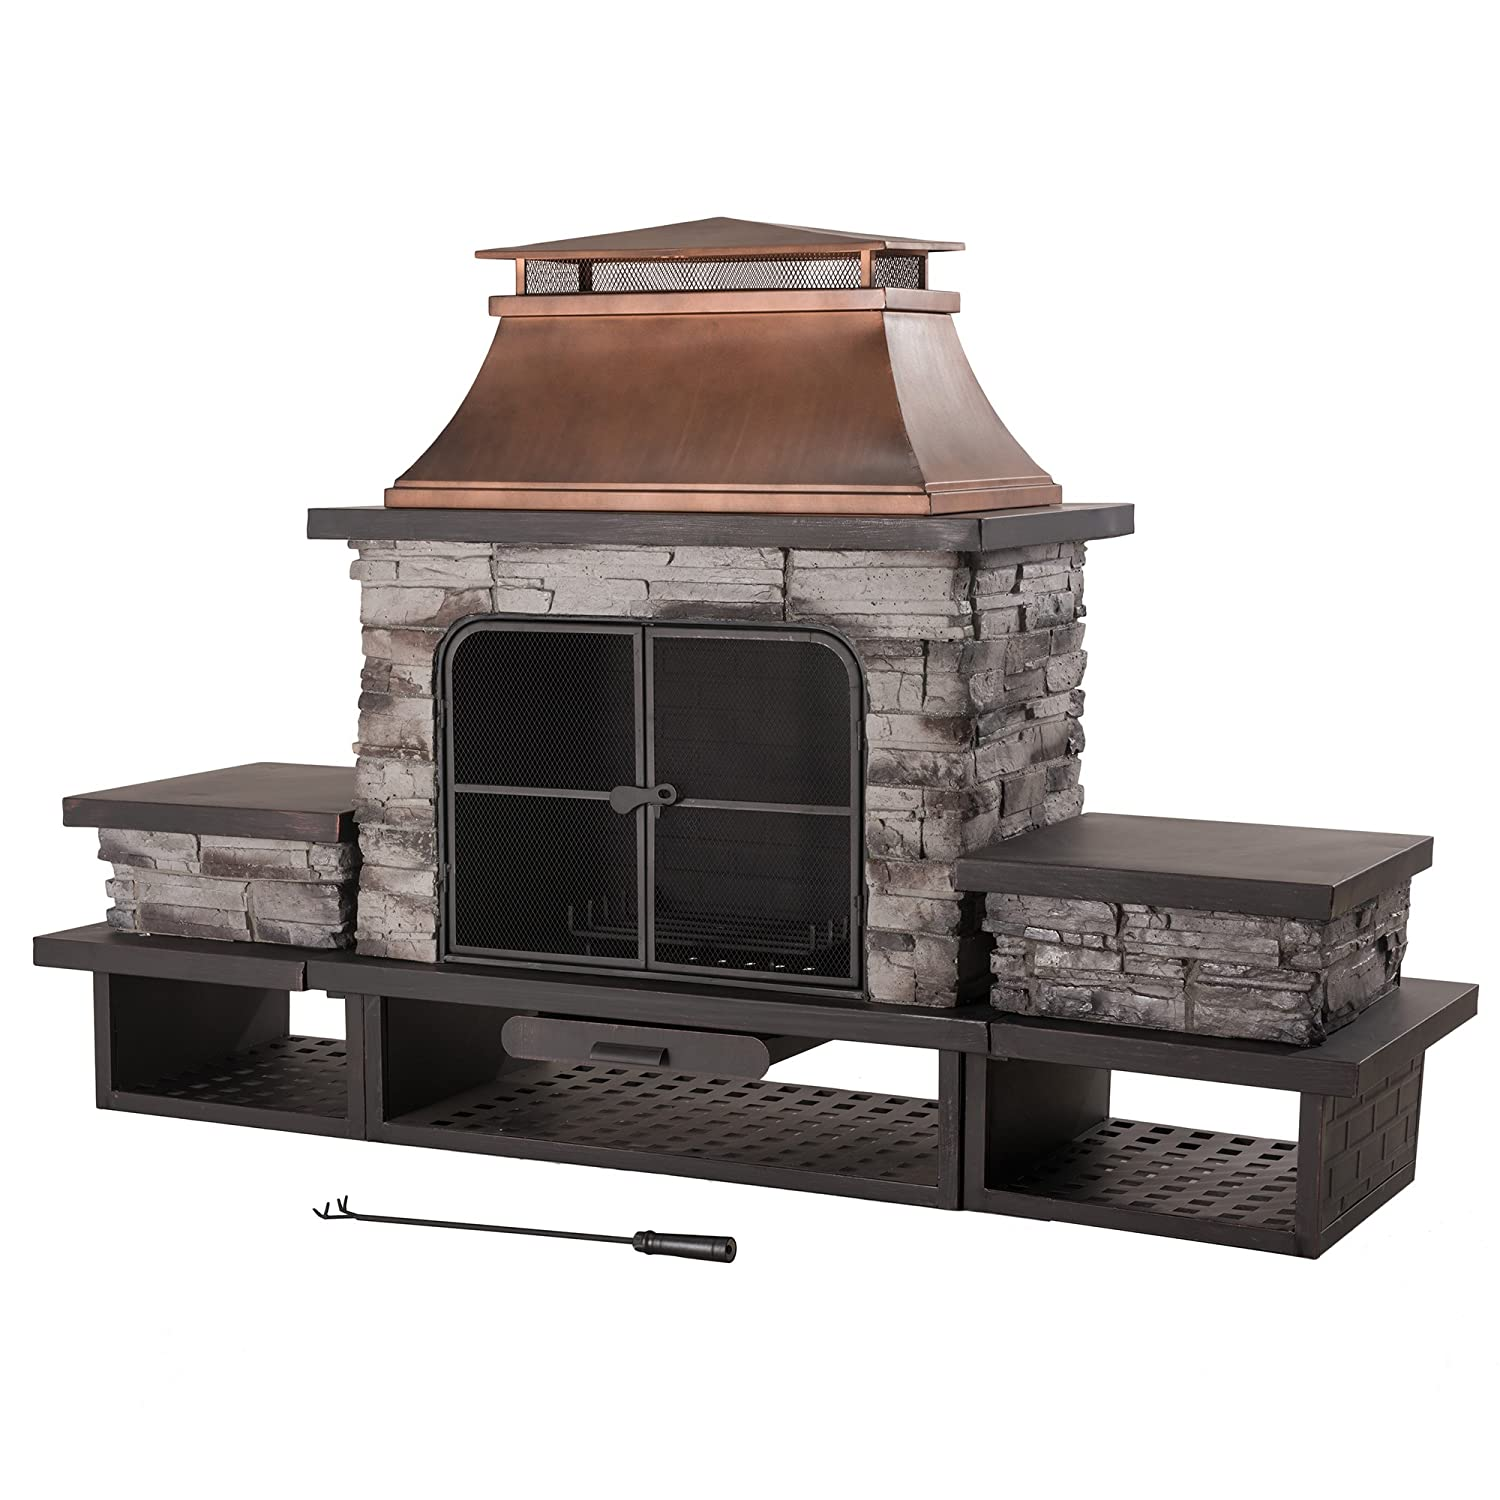 Amazon.com : Sunjoy L OF083PST 2 Stone Fire Place : Patio, Lawn U0026 Garden  Portable Outdoor Fireplace